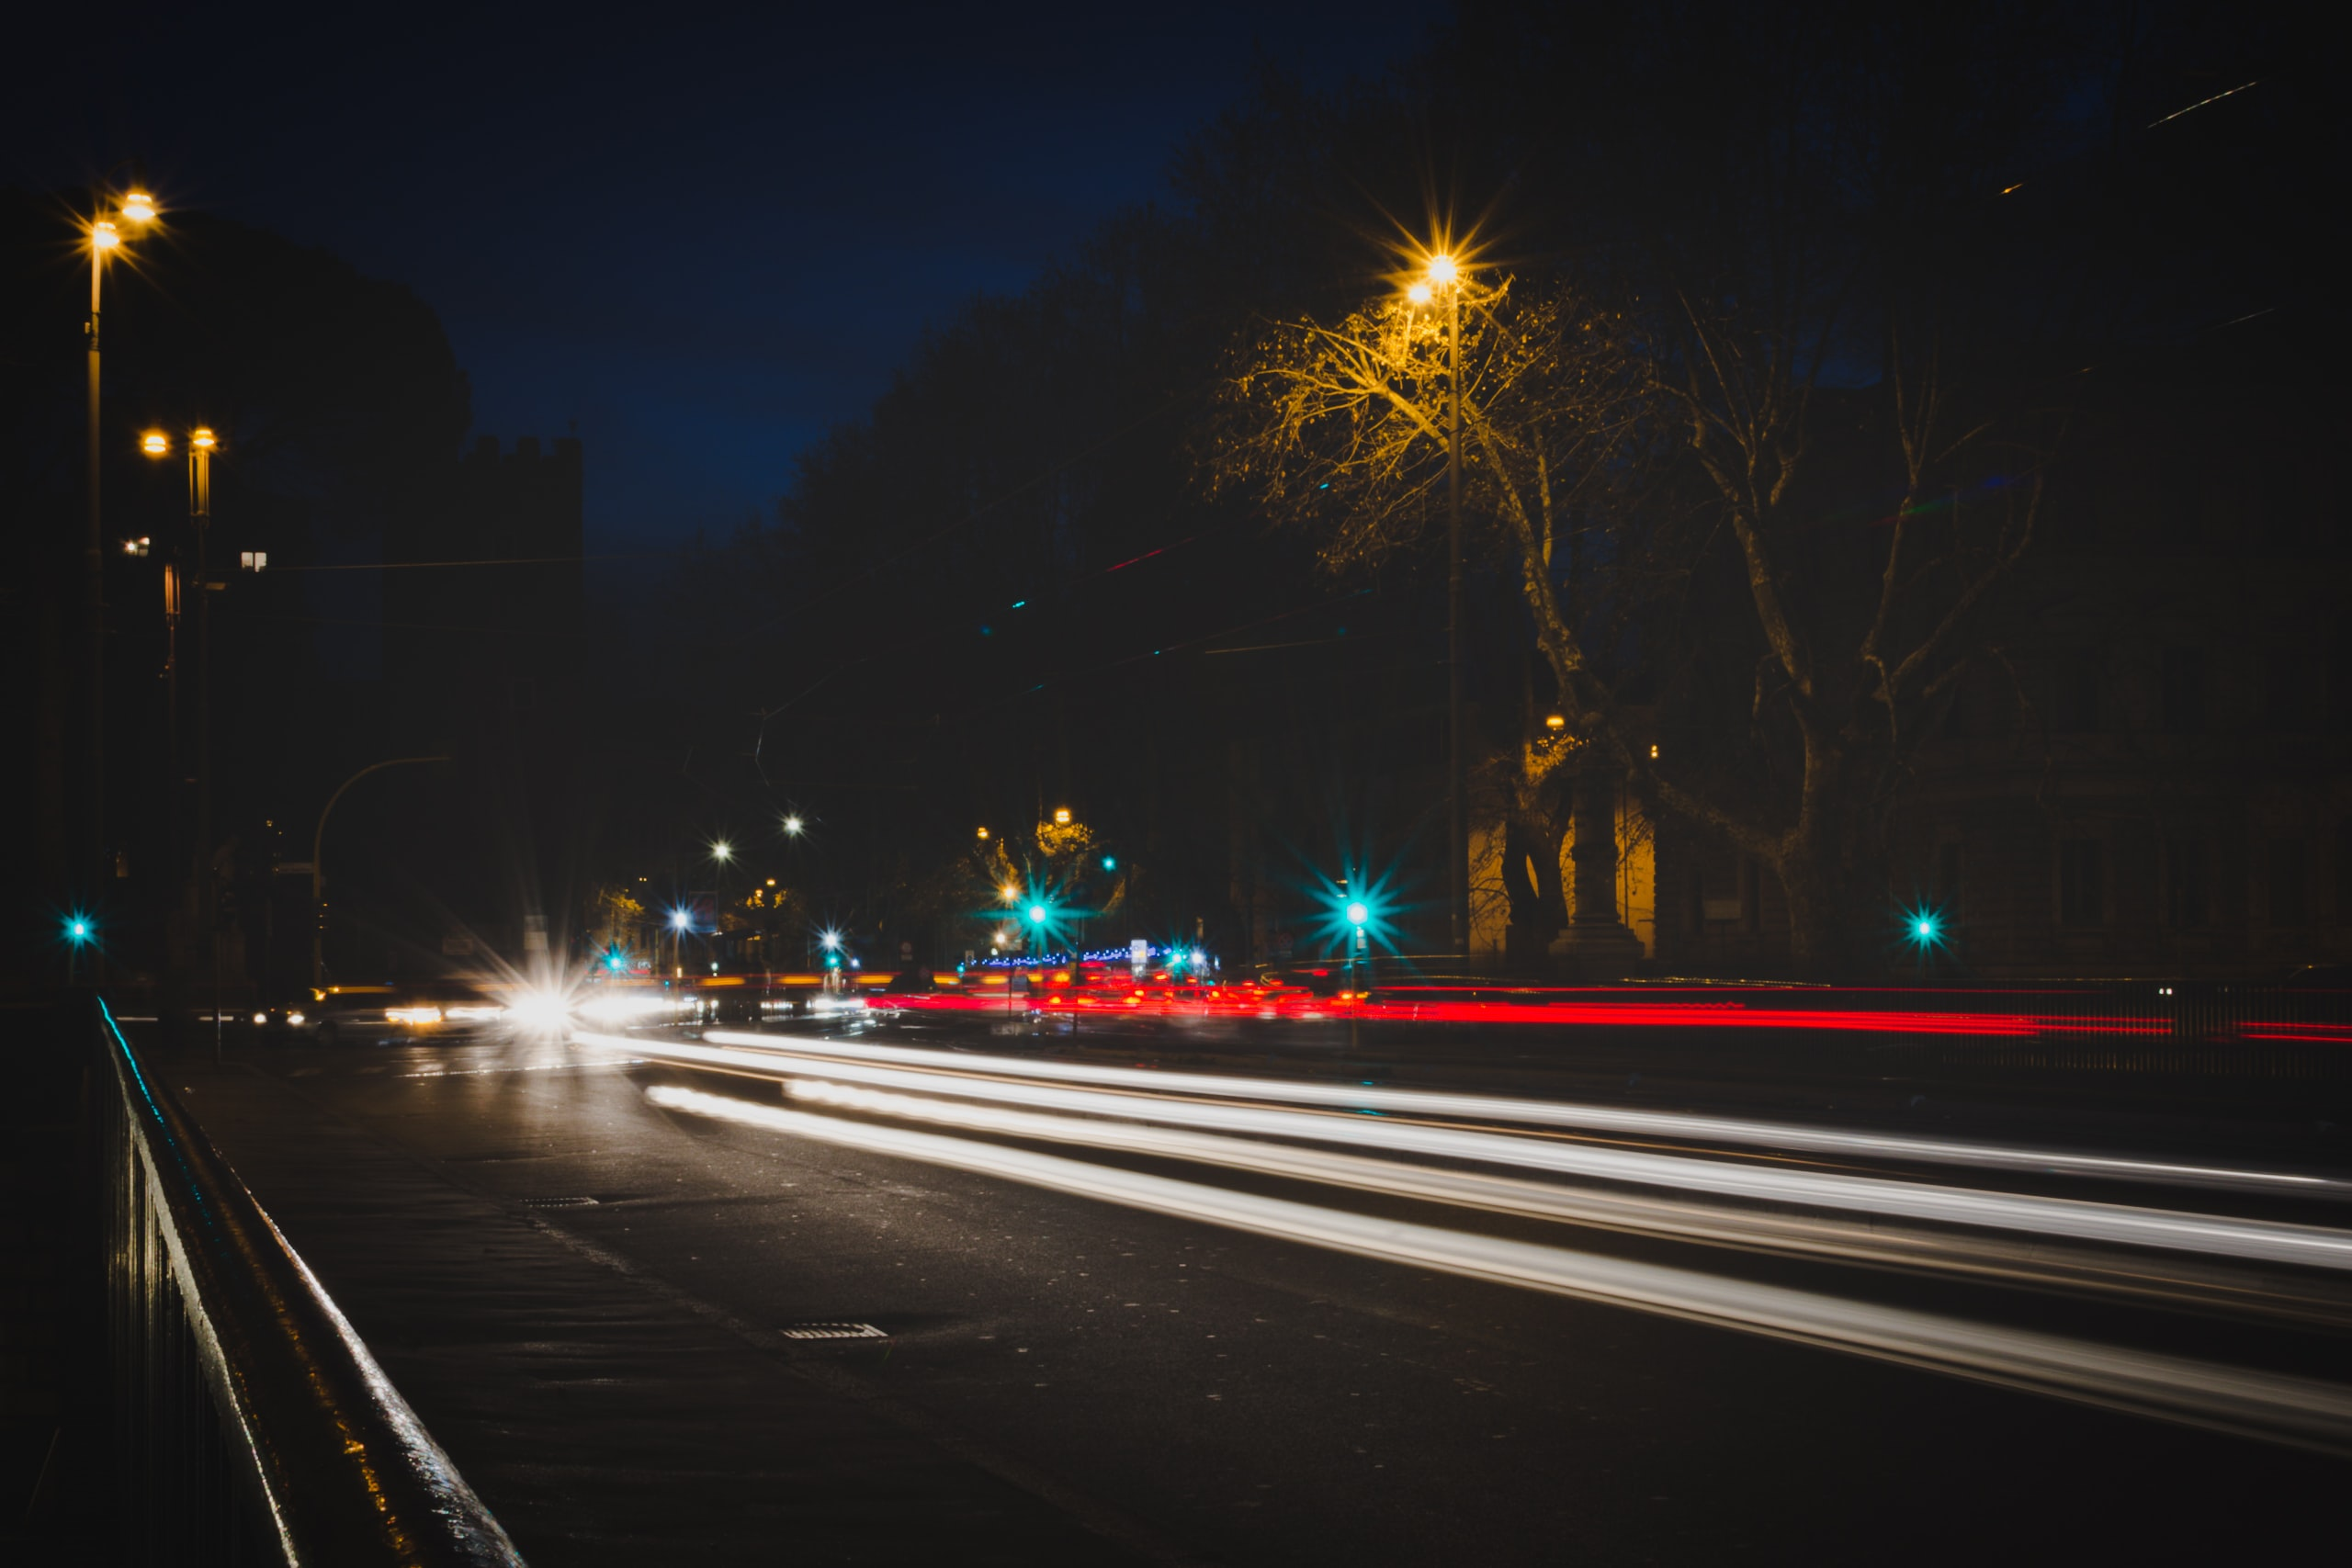 Red and white car light trails at night in the urban area of Rome, Italy.